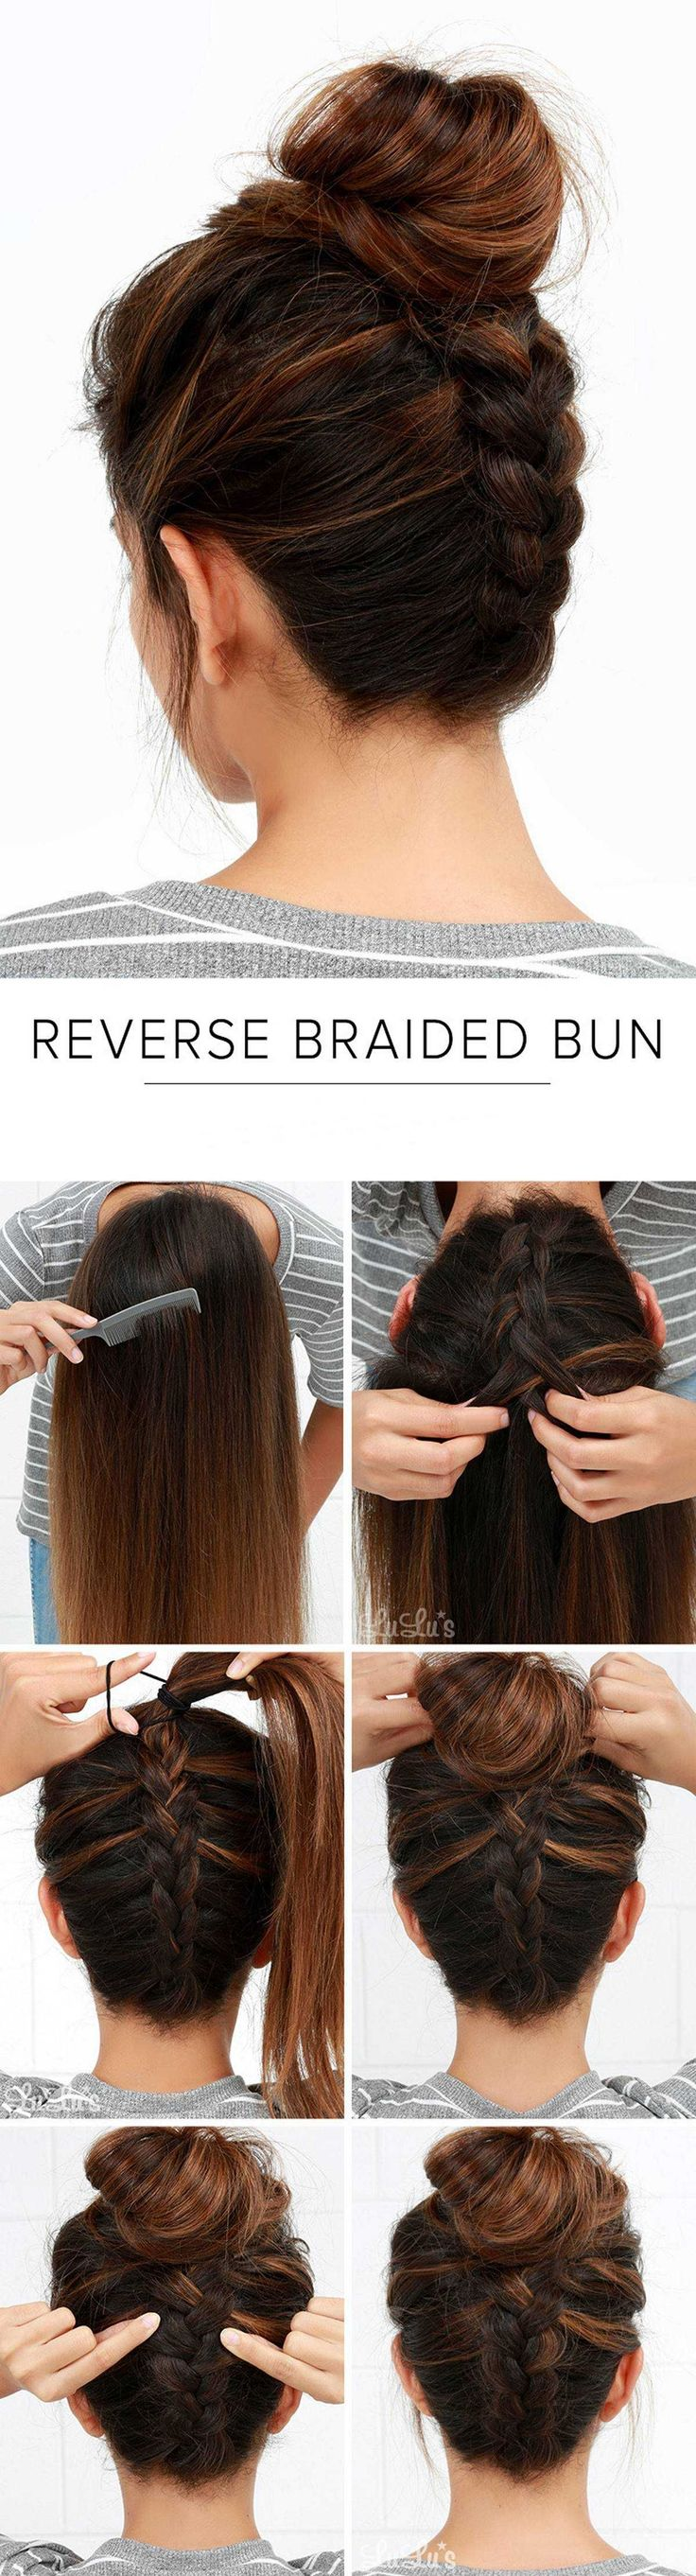 Cool 210 Hairstyles DIY and Tutorial For All Hair Lengths | Fashion